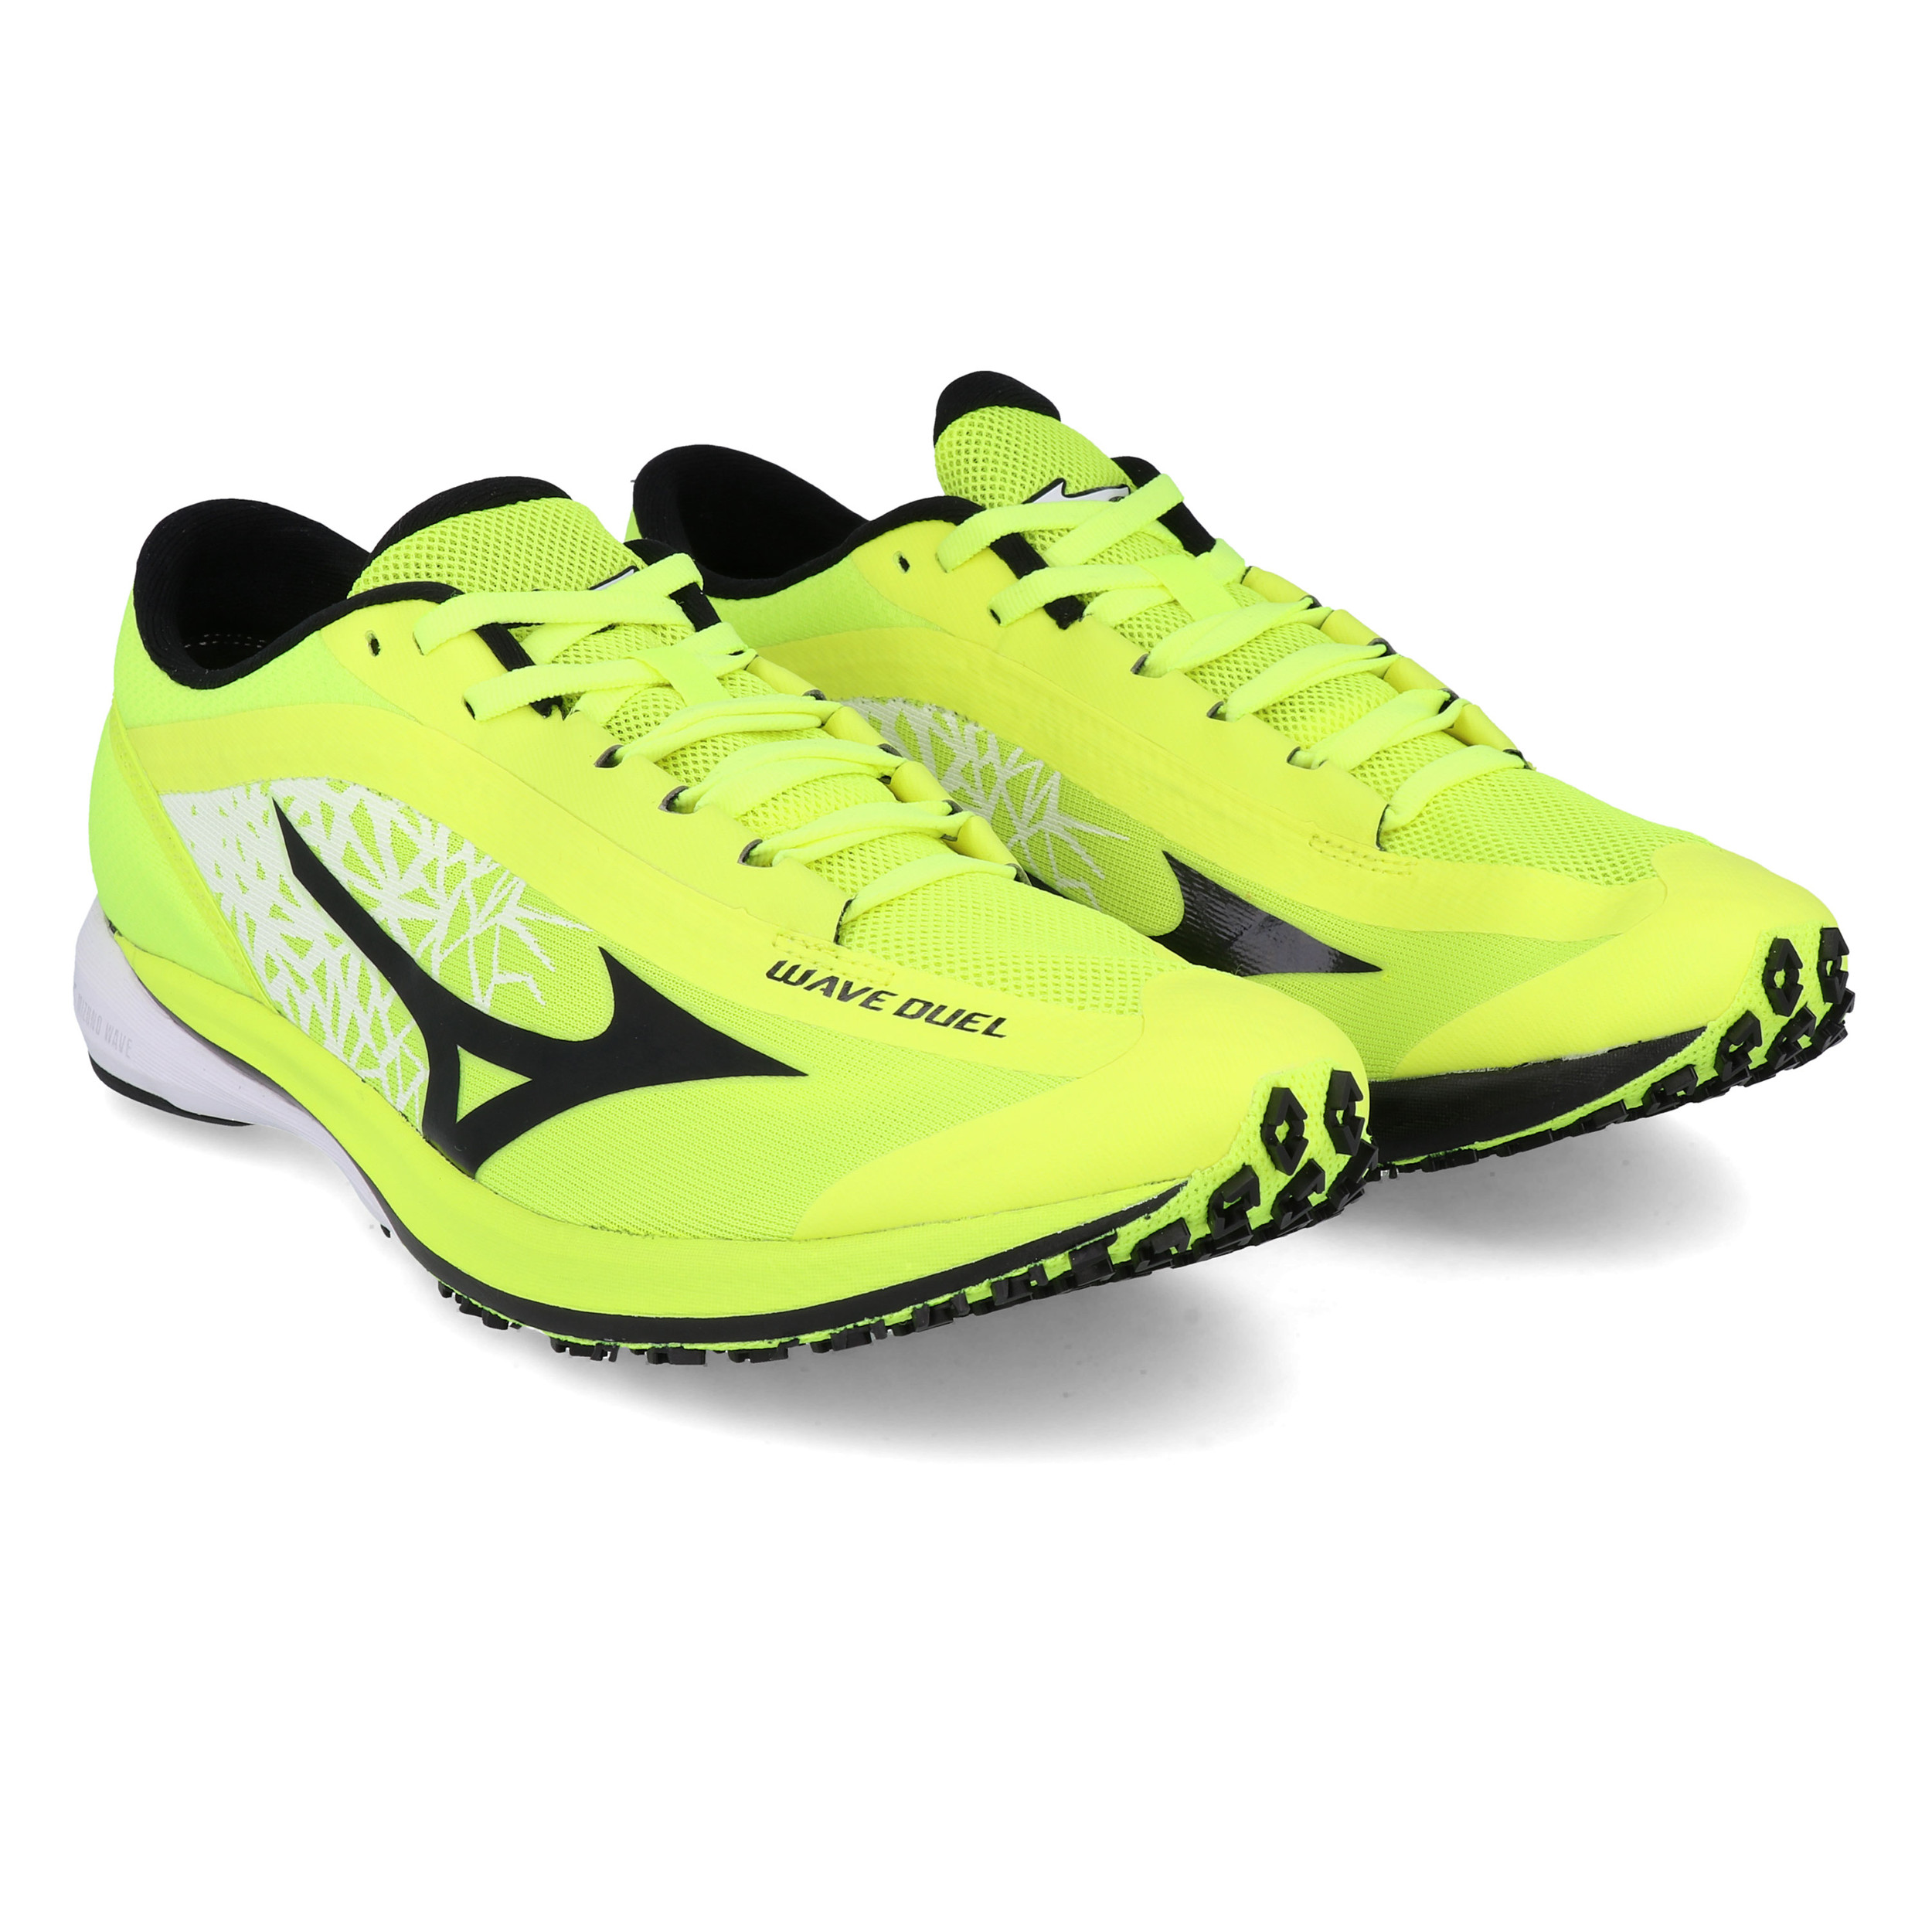 Mizuno Wave Duel Running Shoes